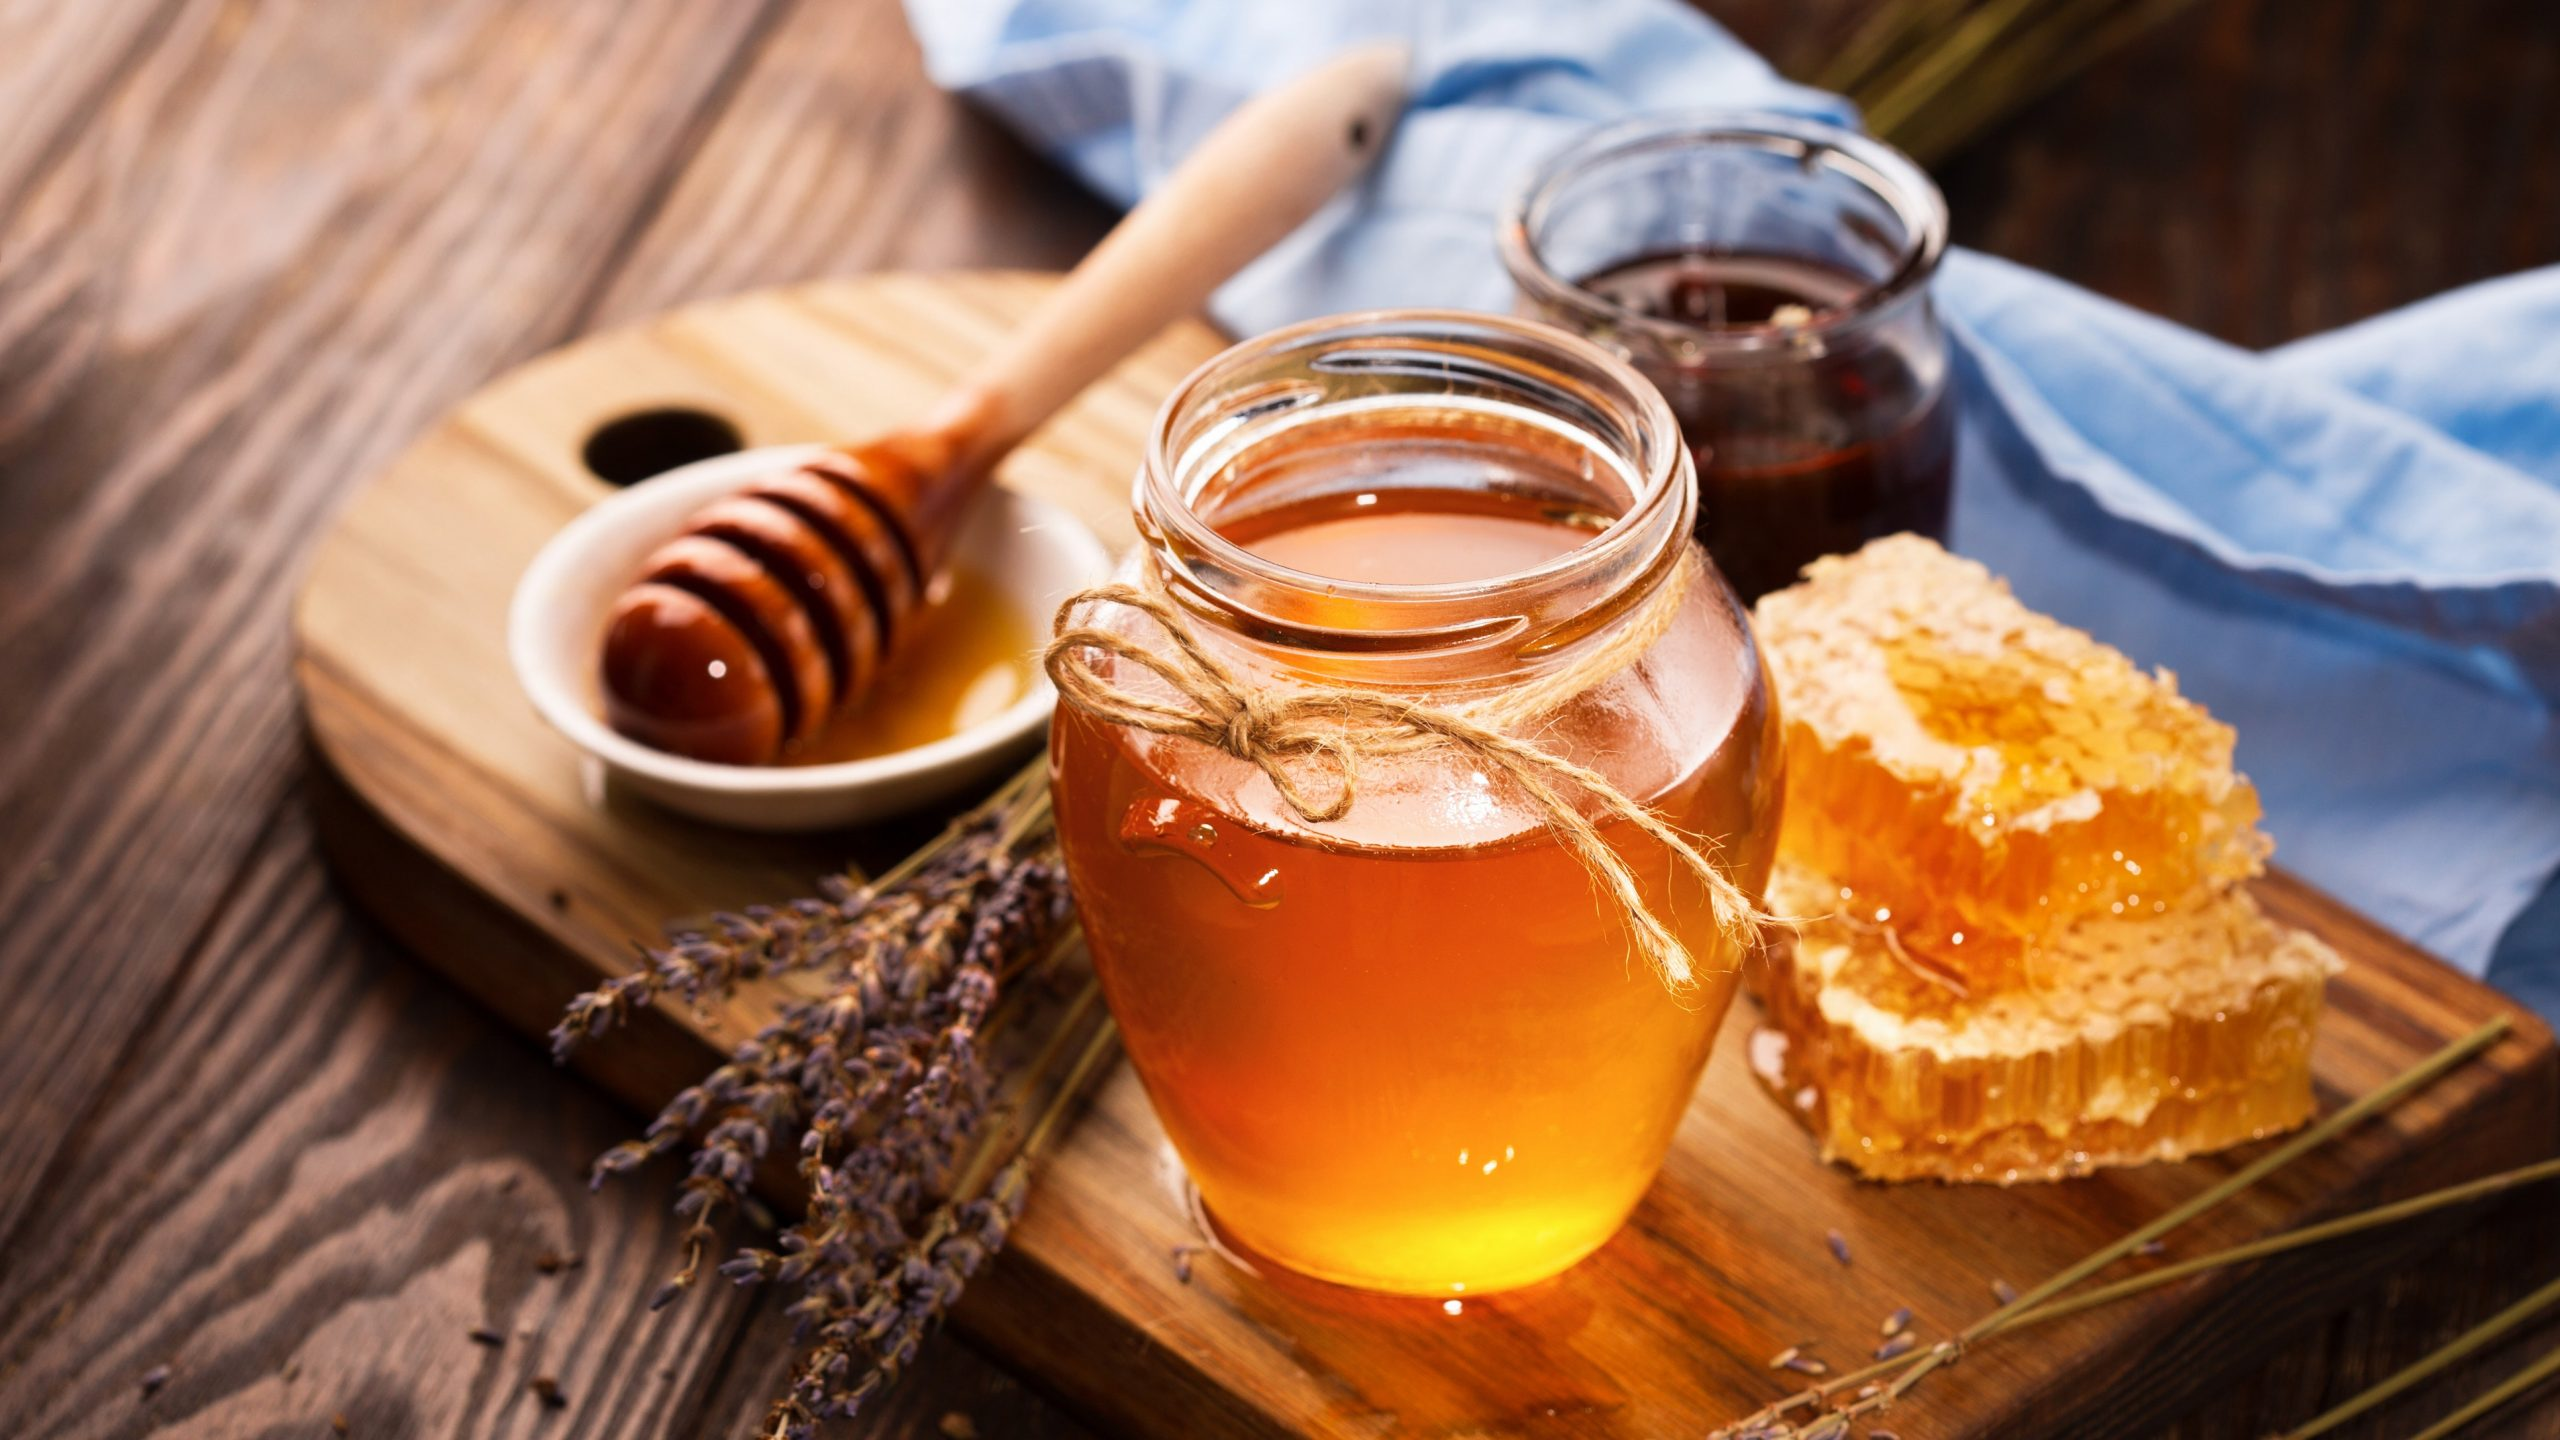 Honey and bee products